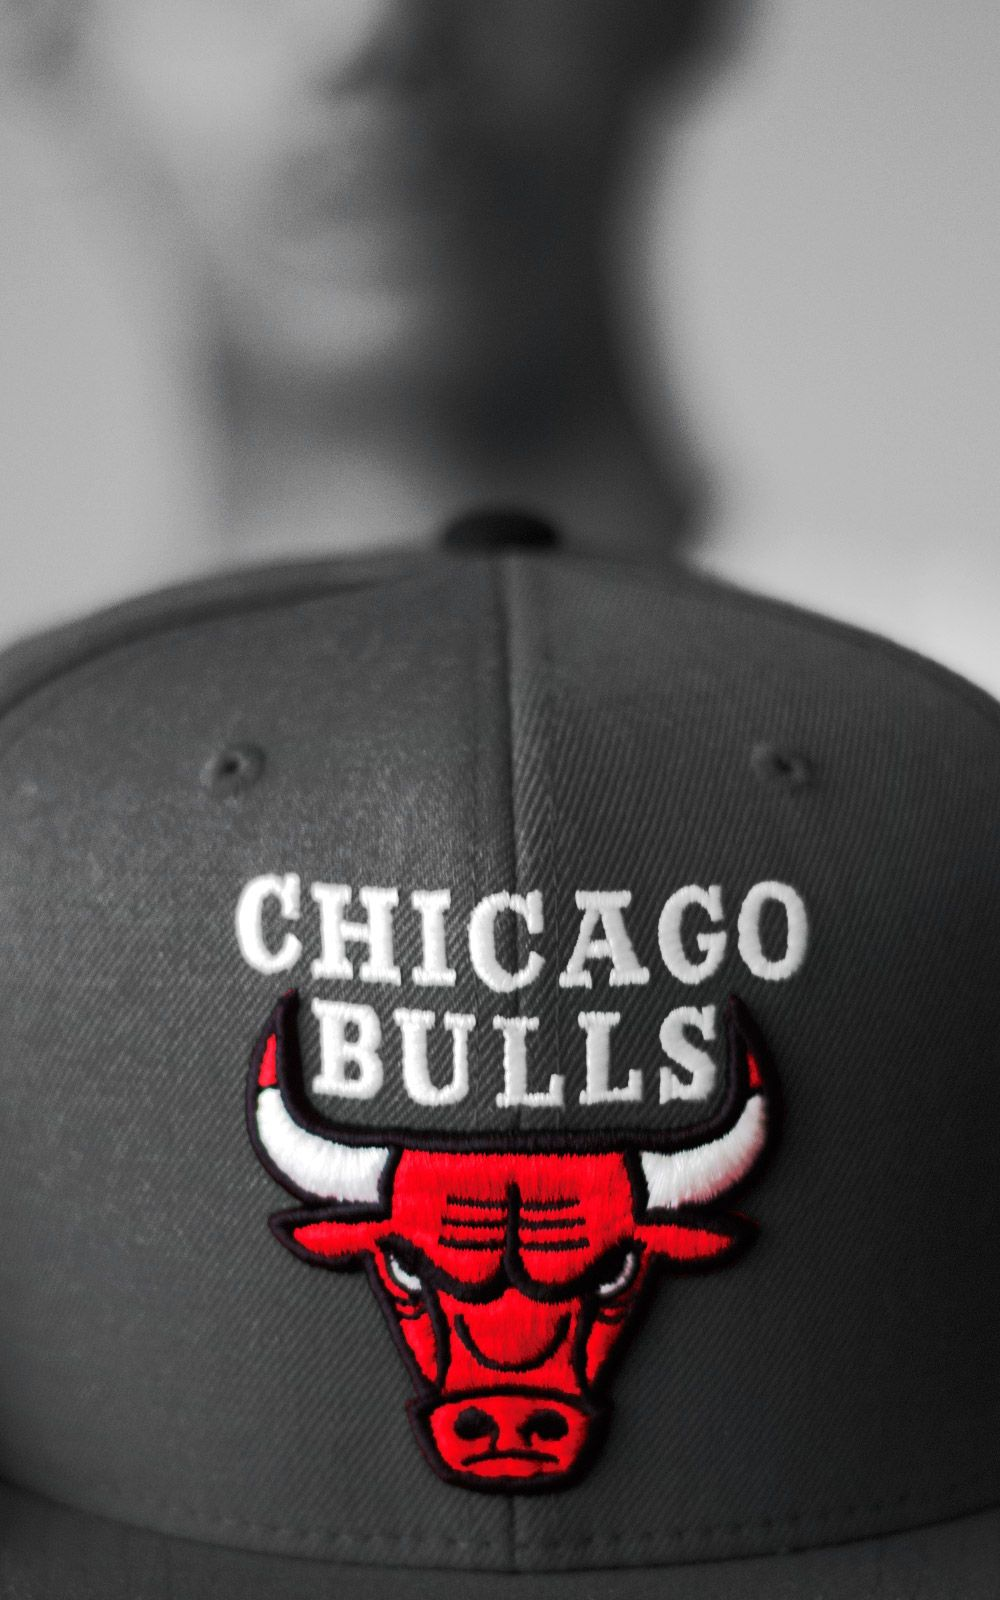 chicago bulls wallpaper for iphone | iphone wallpaper | pinterest